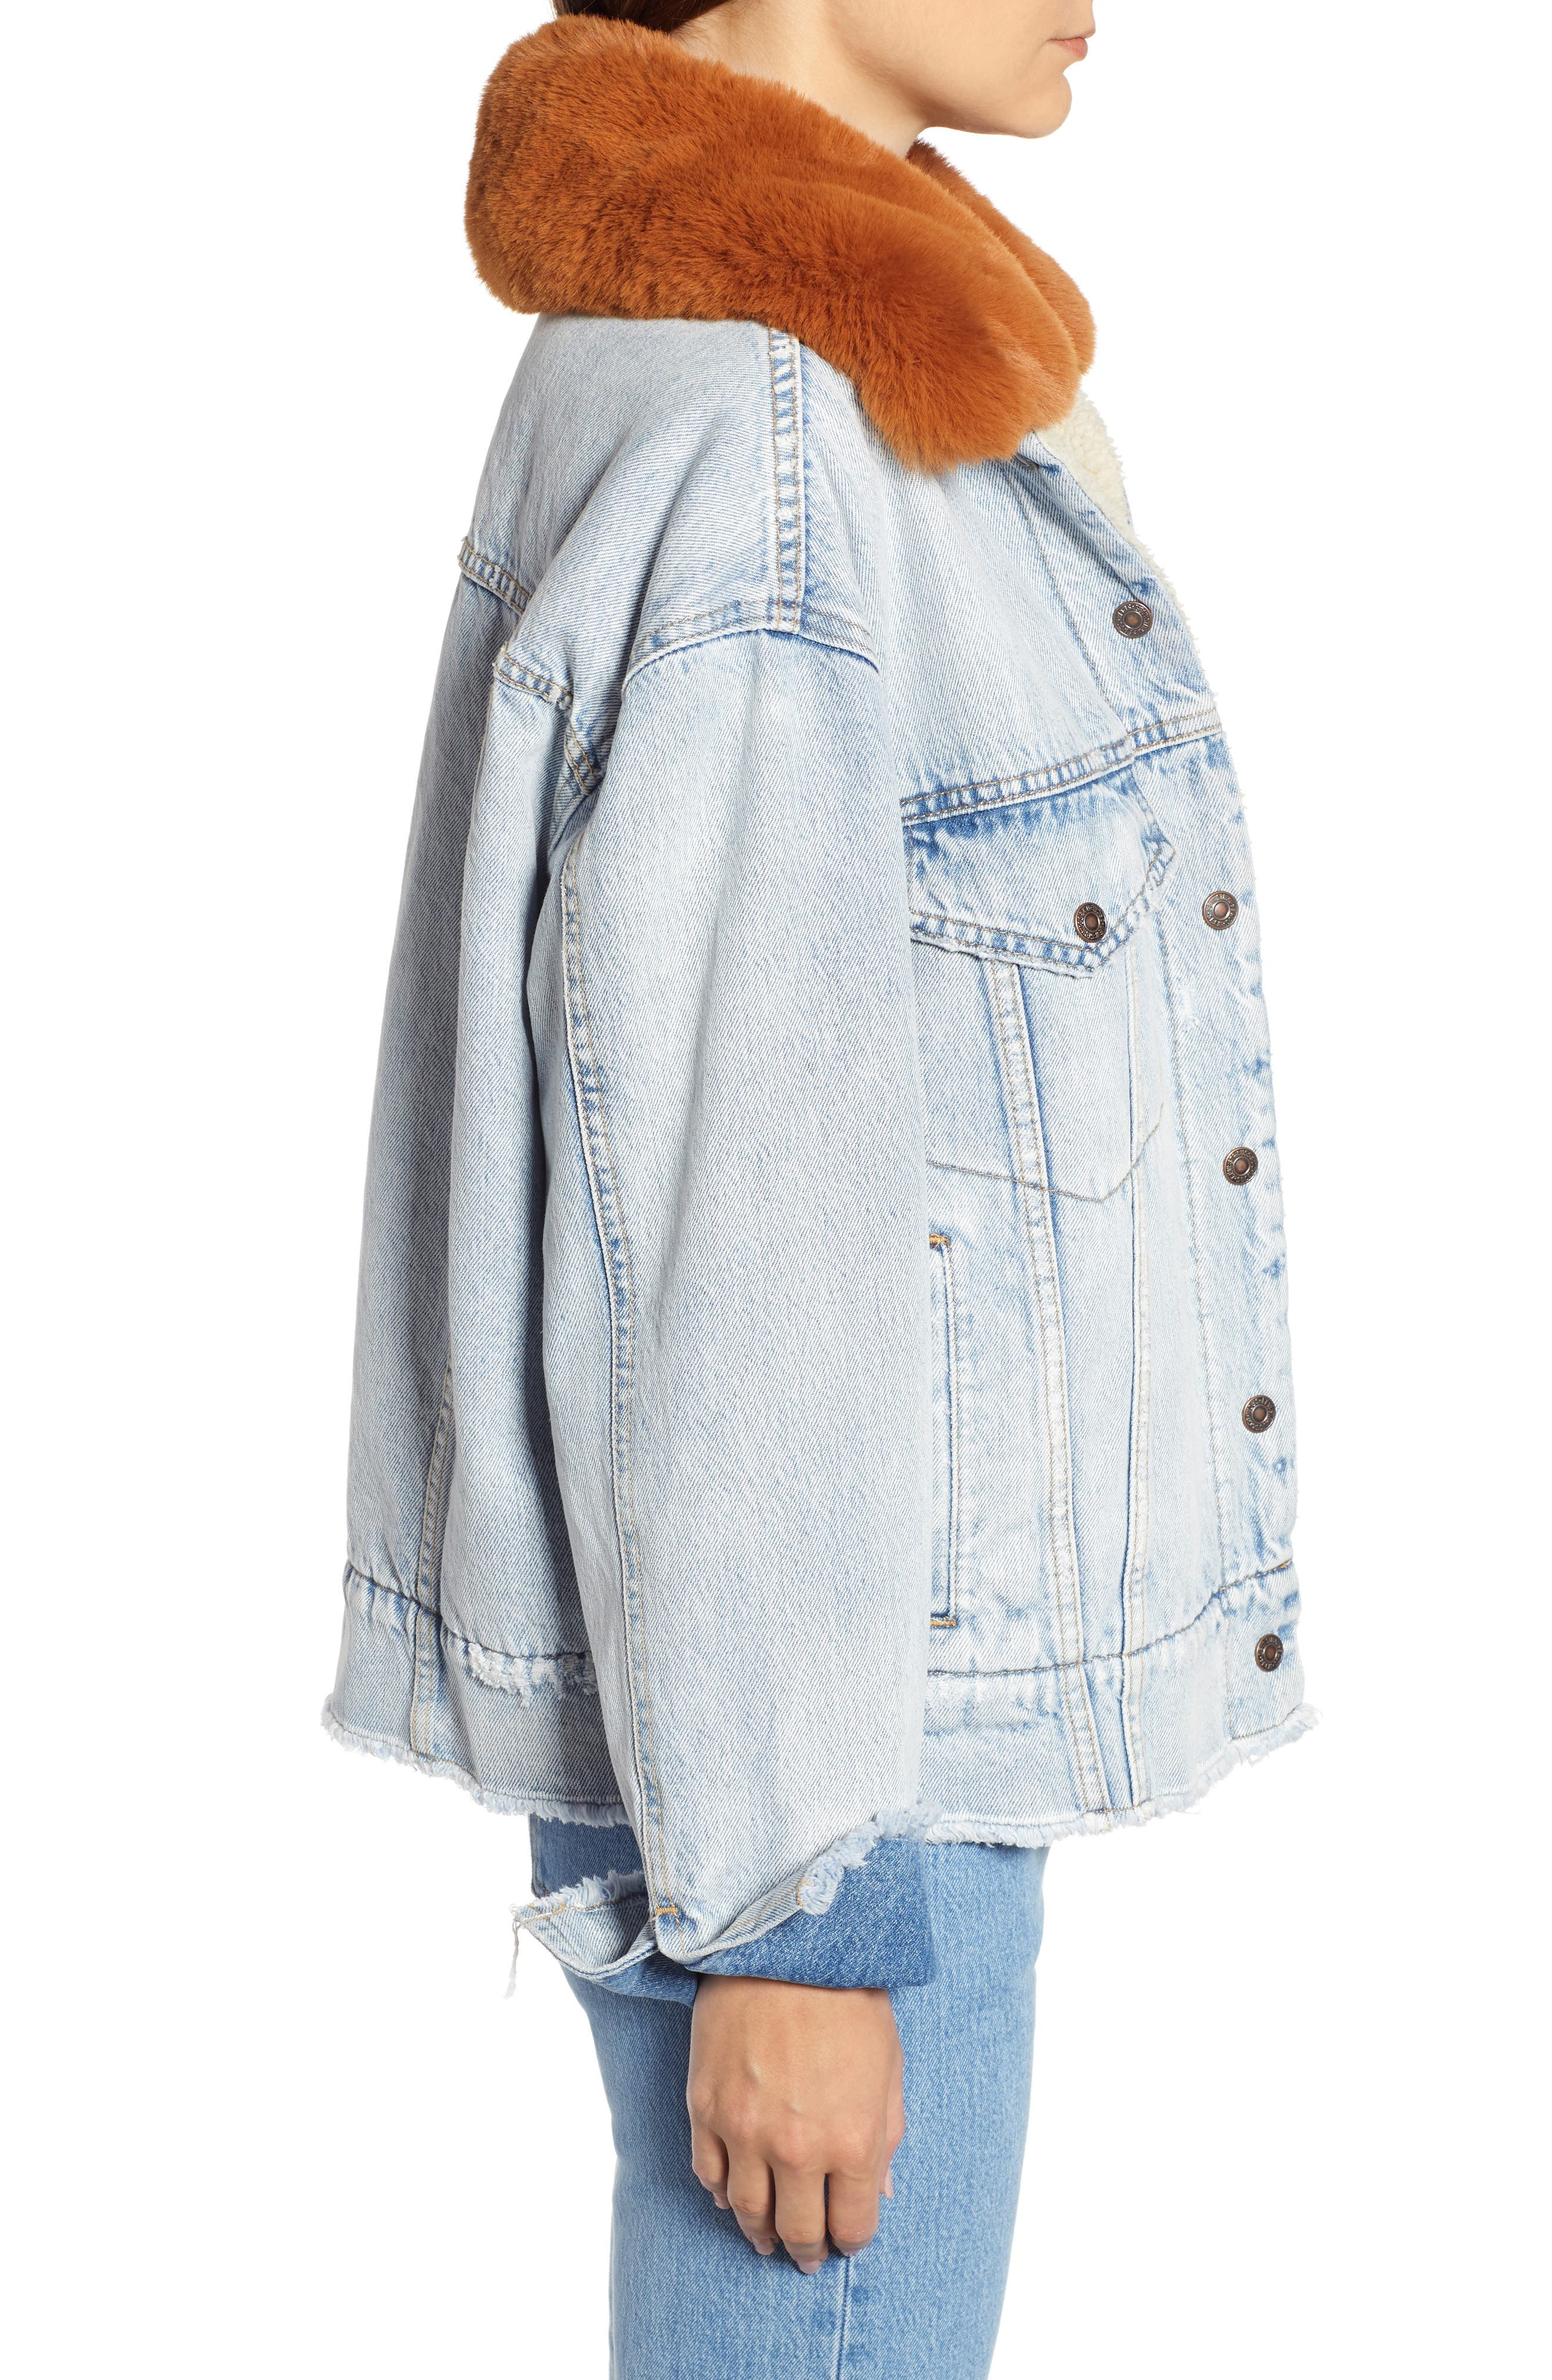 Oversize Faux Shearling Lined Denim Trucker Jacket with Removable Faux Fur Collar,                             Alternate thumbnail 3, color,                             401